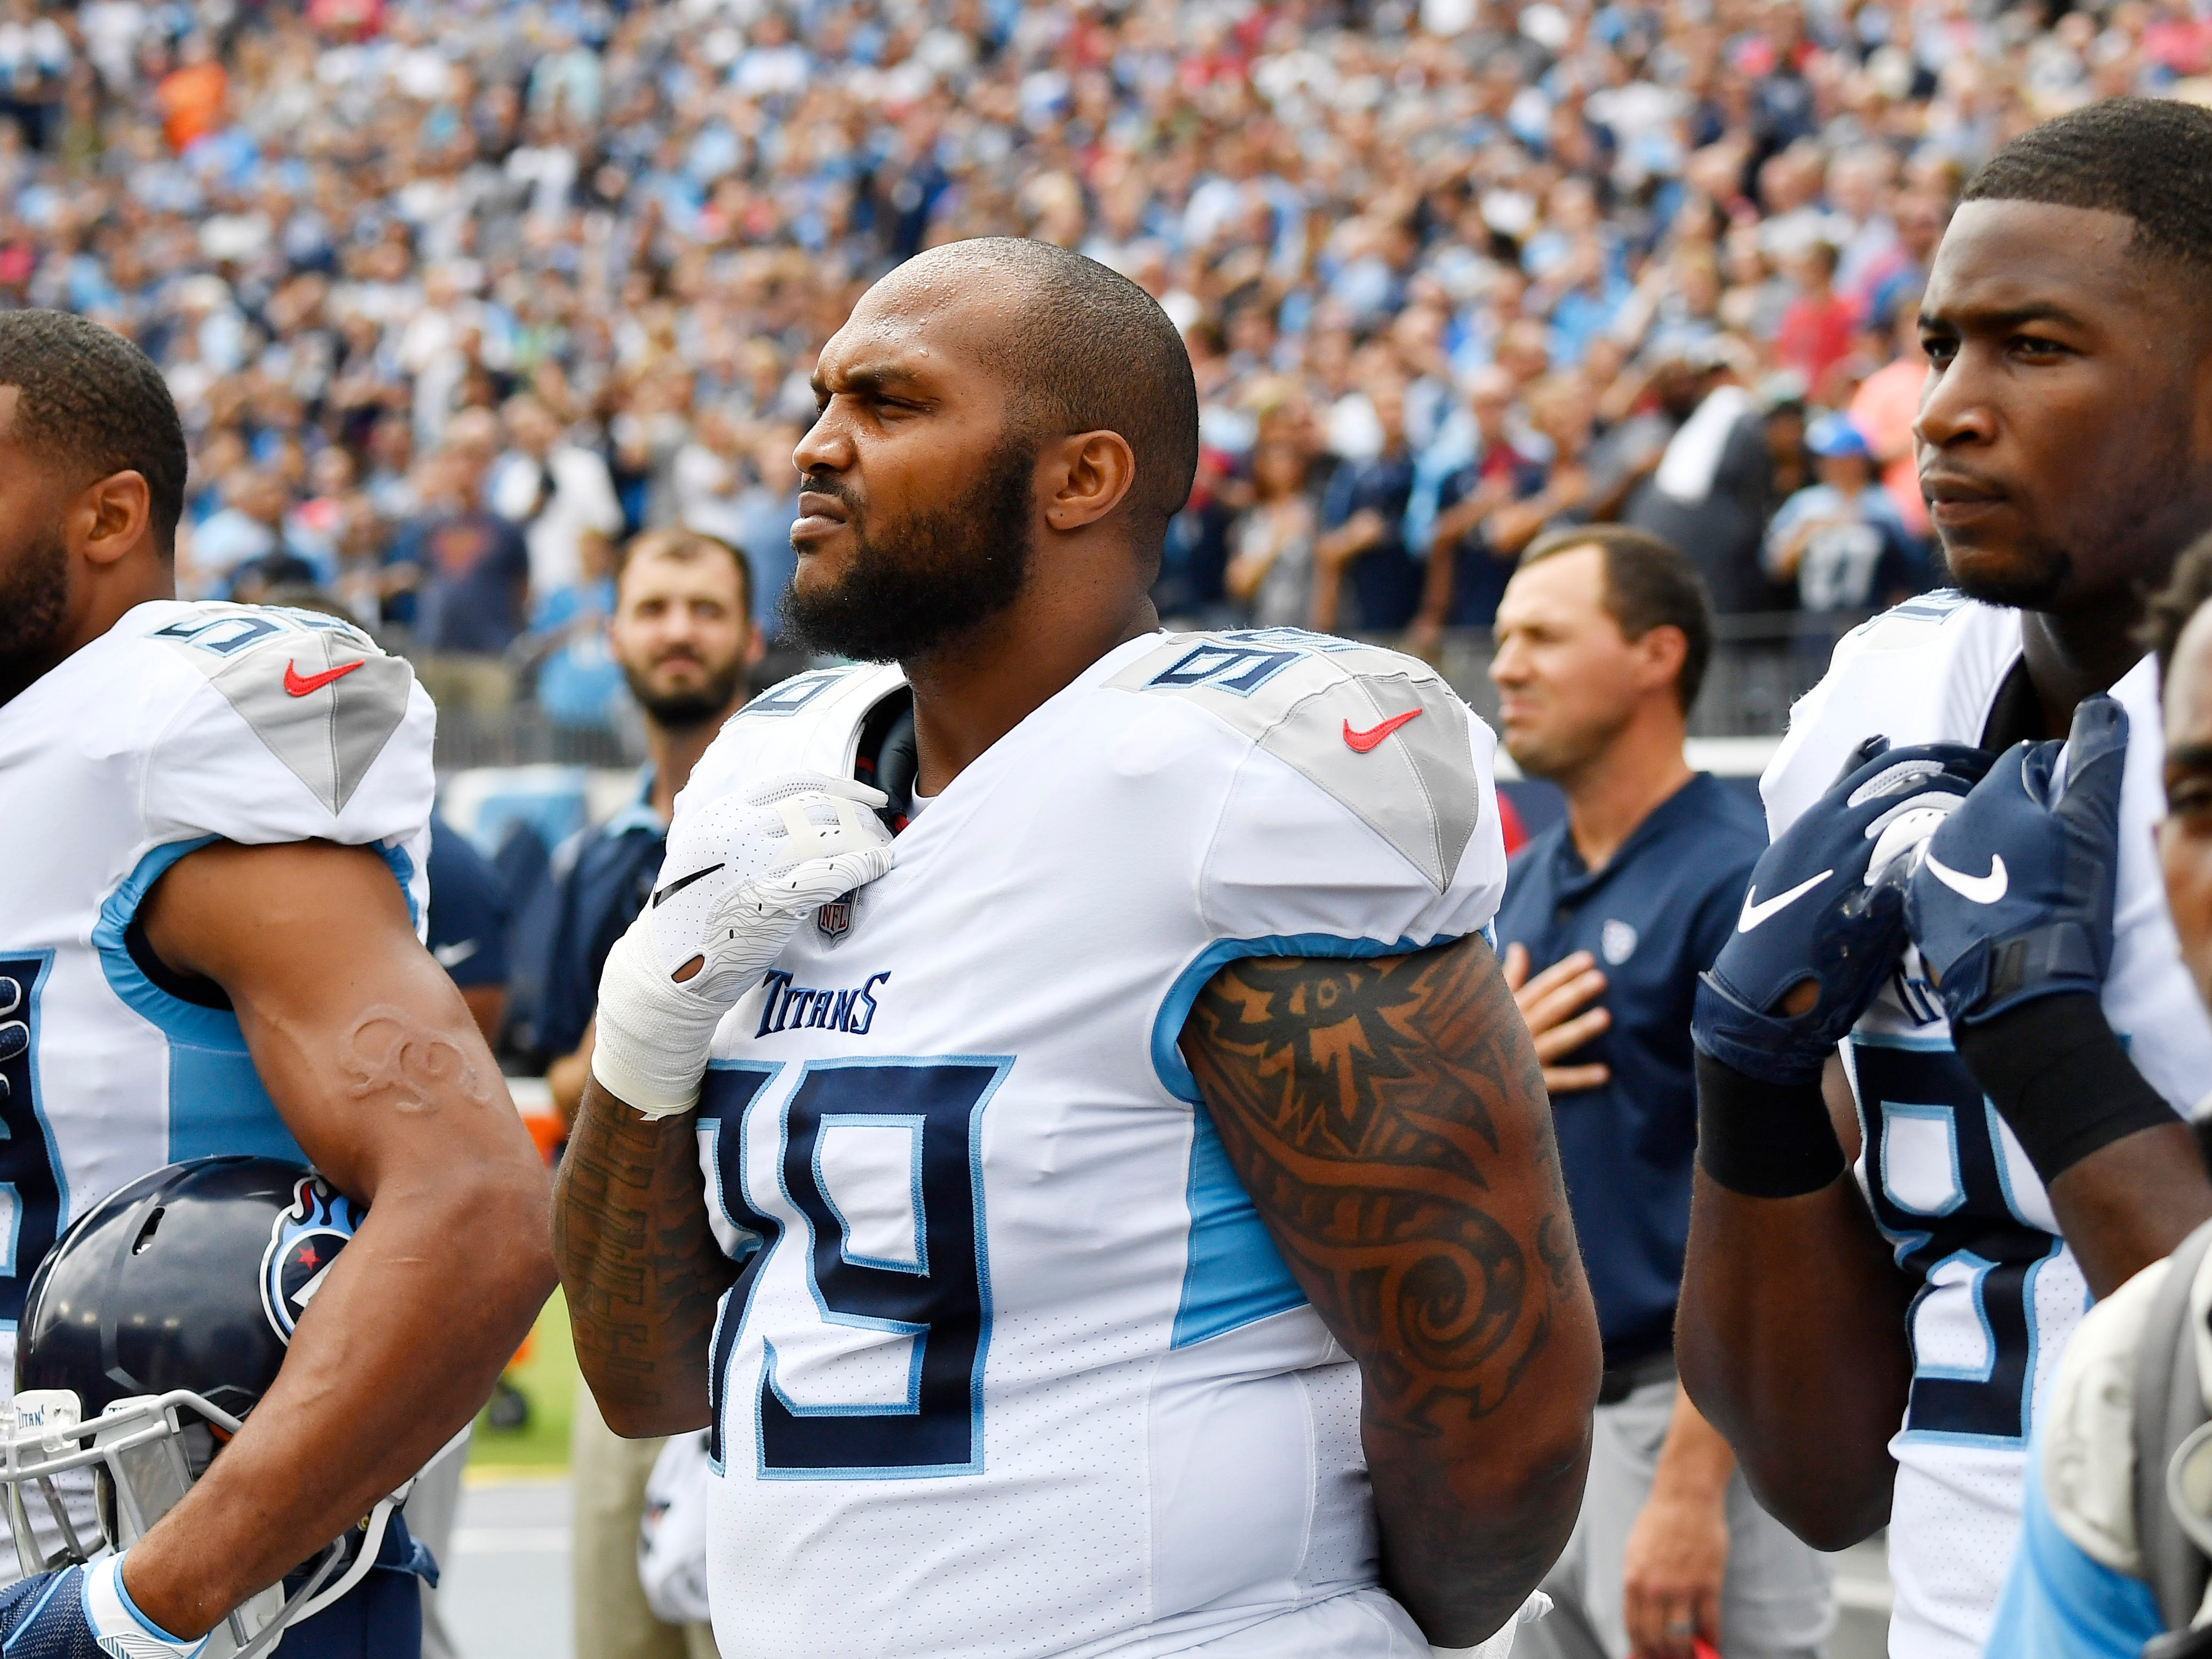 The Titans stand for the National Anthem at Nissan Stadium Sunday, Sept. 16, 2018, in Nashville, Tenn.